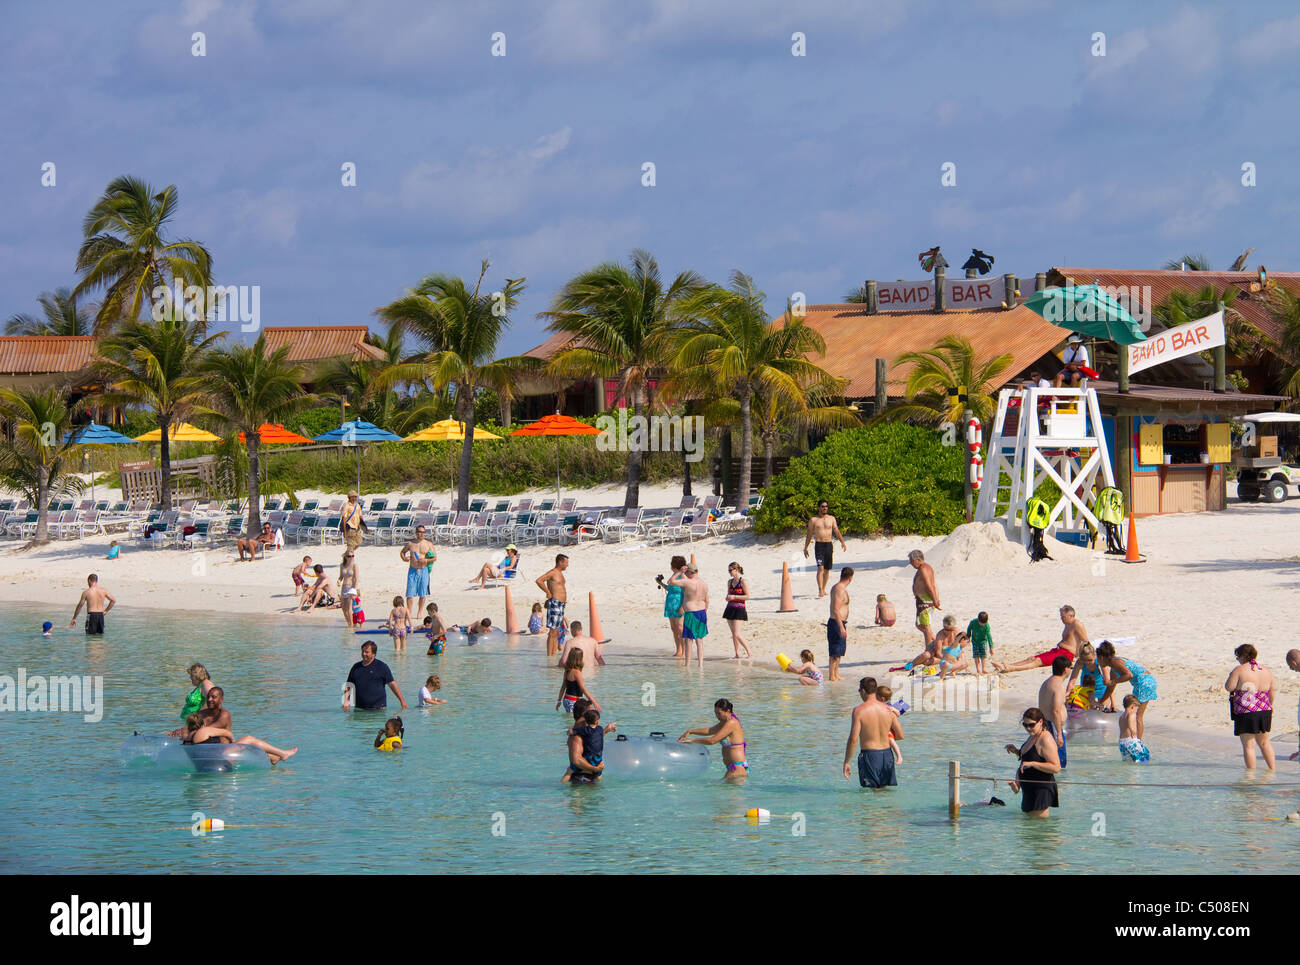 Family beaches on Castaway Cay provide a delightful day of sun, sand and sea for Disney Cruise Line guests, Bahamas - Stock Image